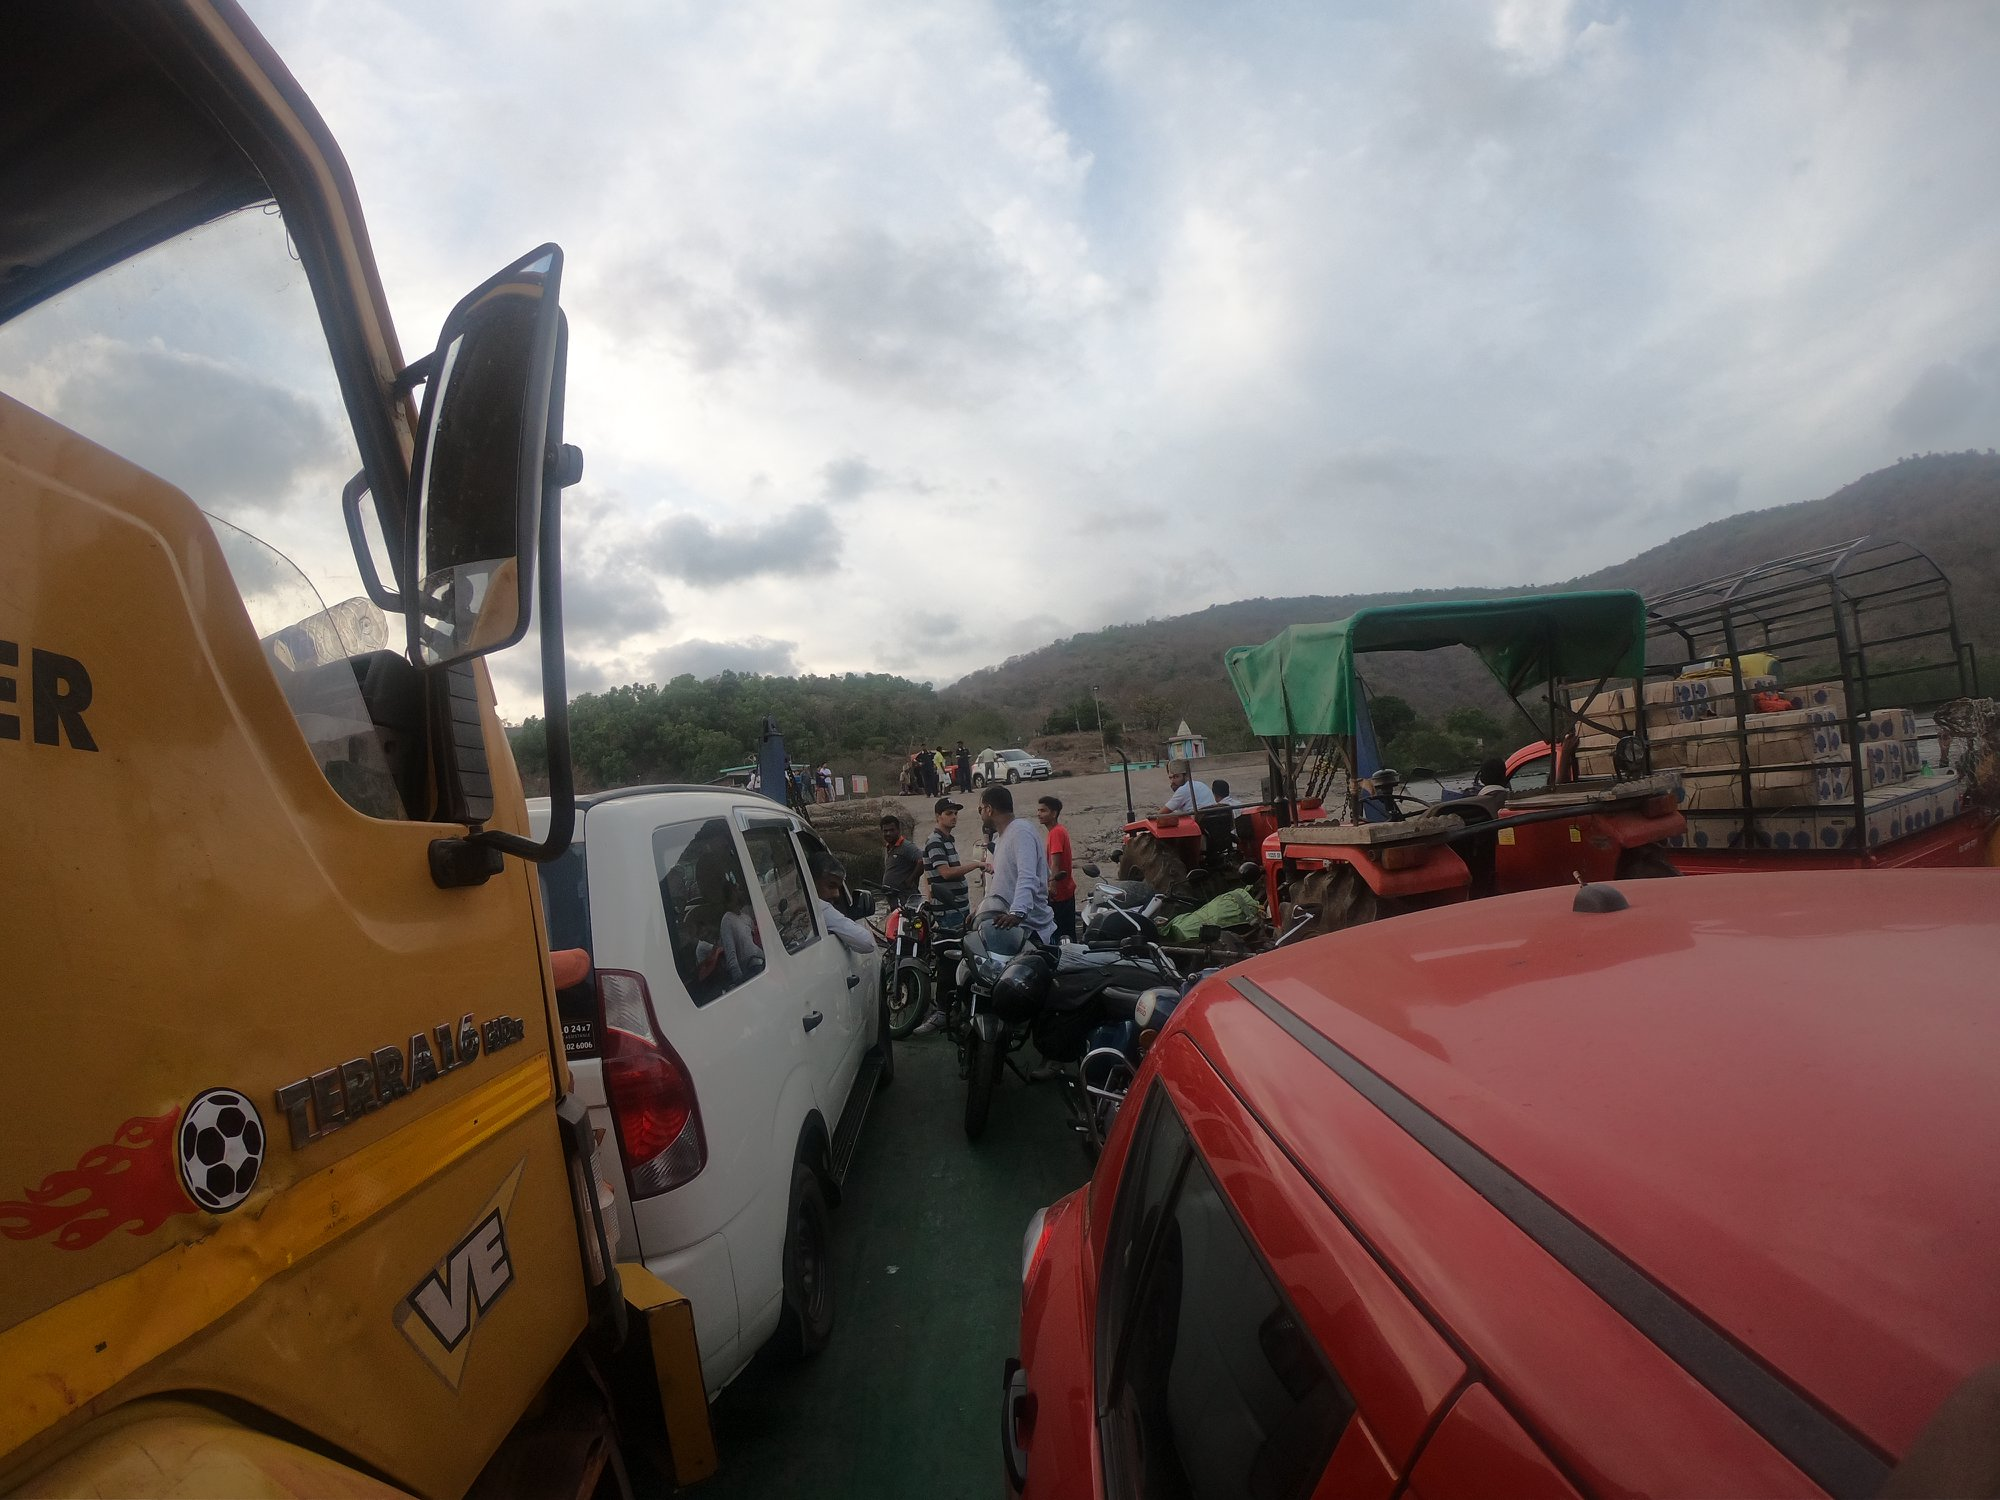 Jammed on all sides in the Bagmandala Ferry